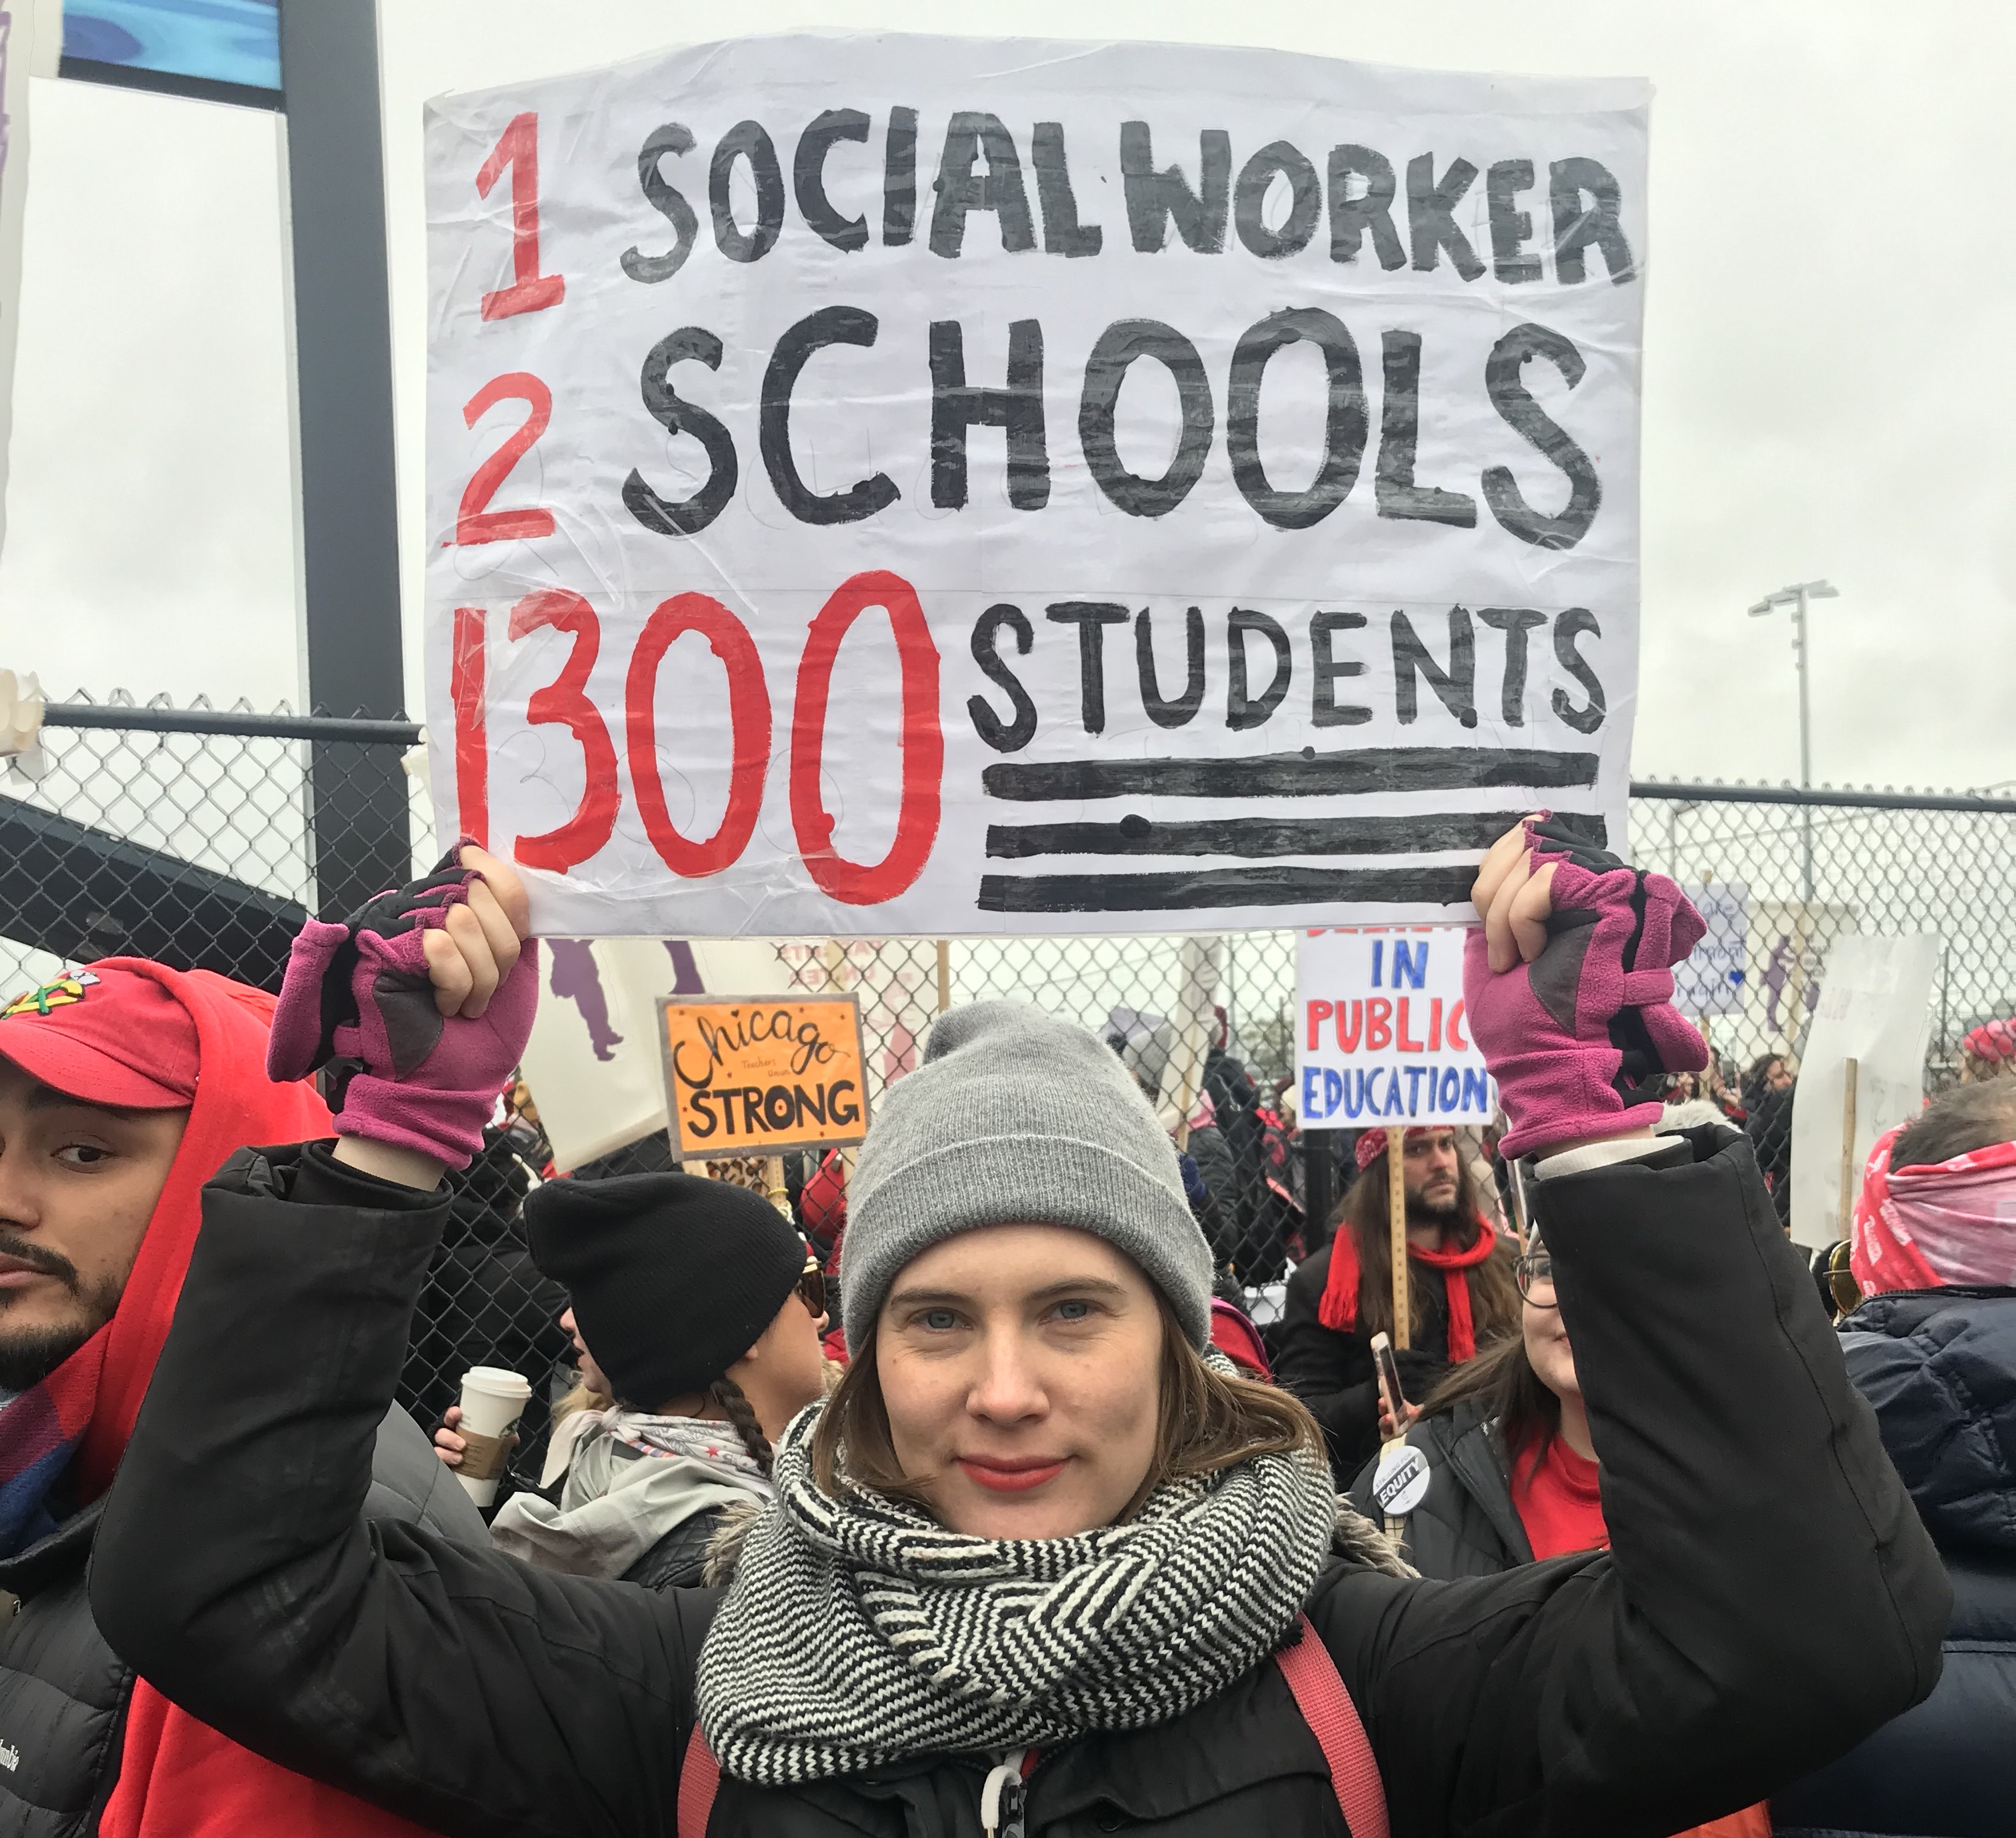 Elizabeth Weiss joined picket lines during the Chicago teachers strike to advocate for school social workers like herself.